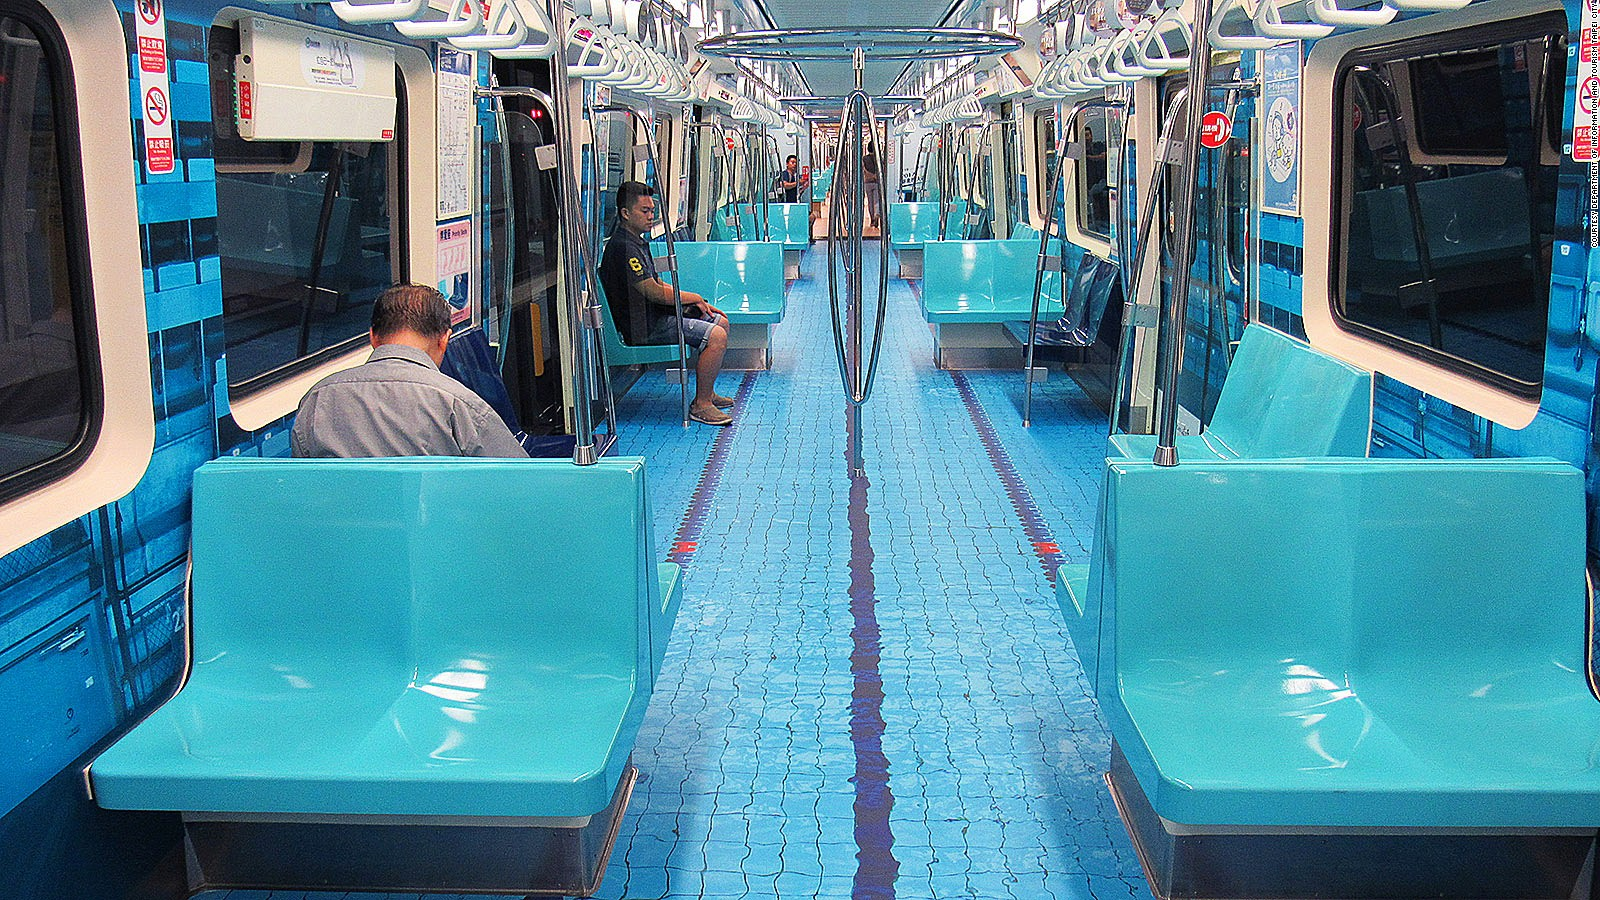 Swimmingpool  Taipei turns metro into 'swimming pool' for Universiade 2017 | CNN ...